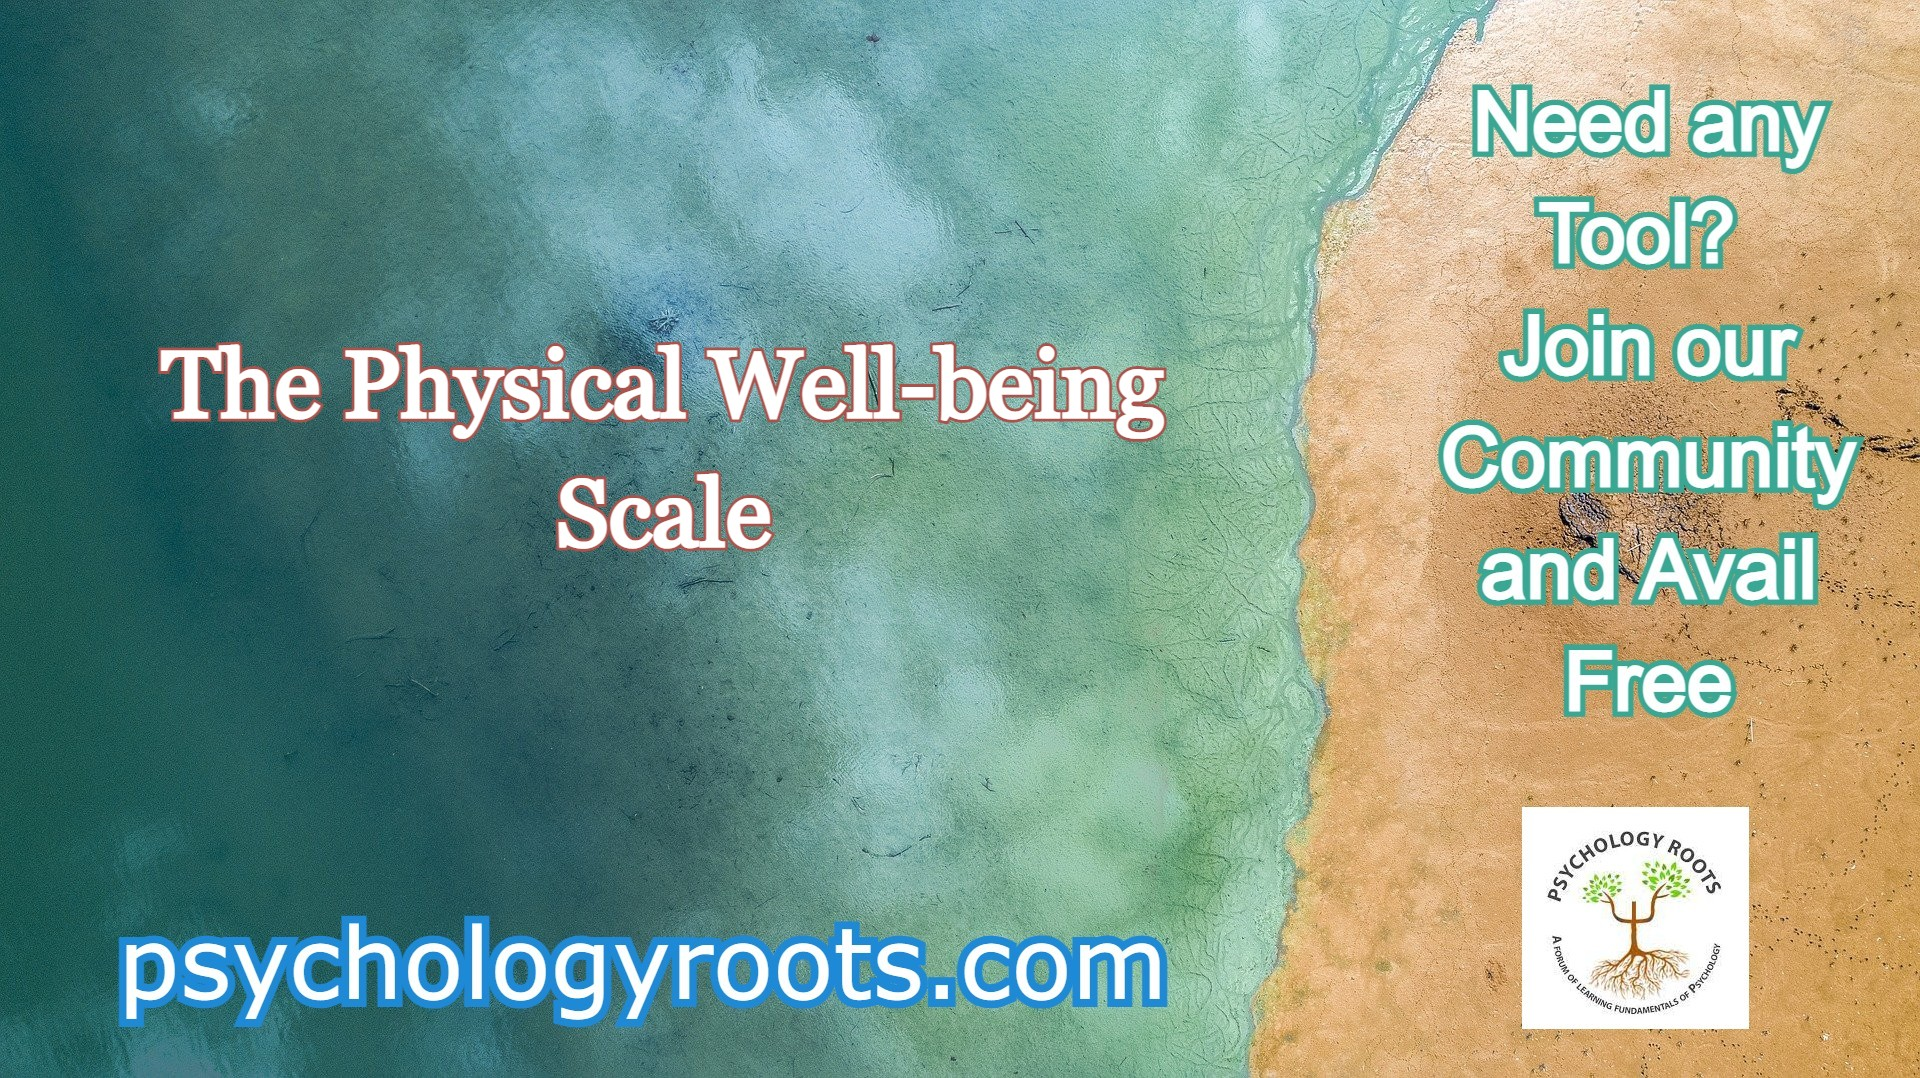 The Physical Well-being Scale